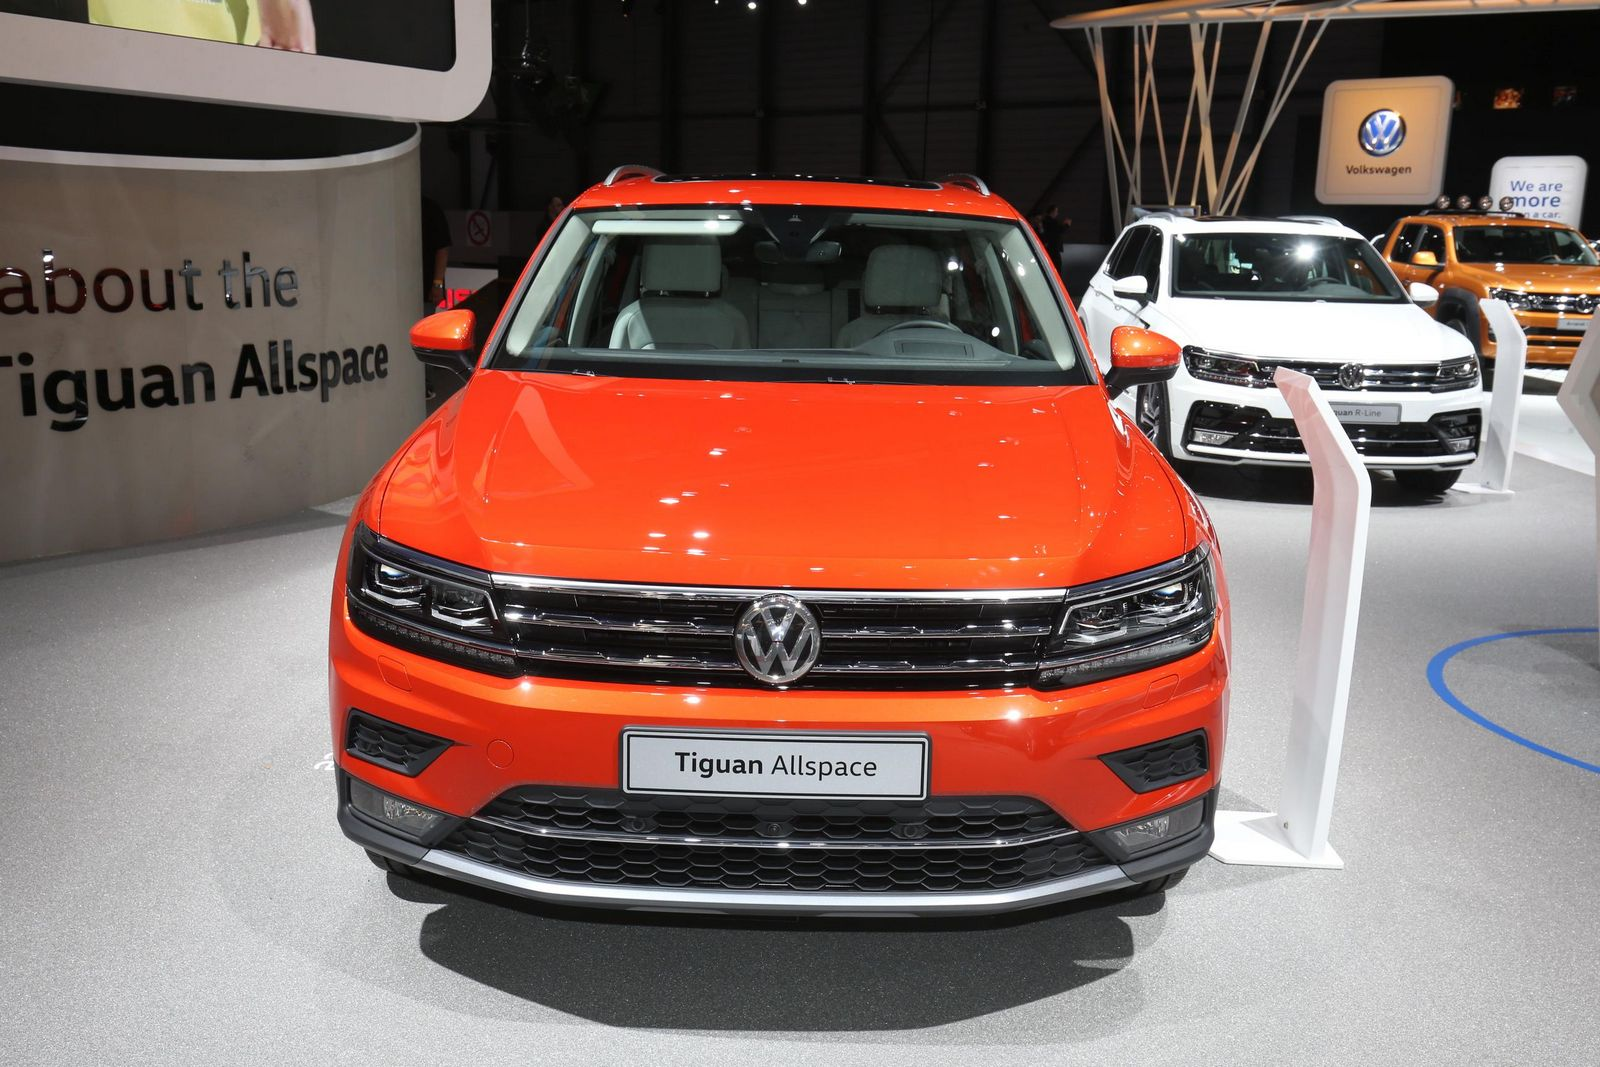 europe enjoys its first sight of the vw tiguan allspace carscoops. Black Bedroom Furniture Sets. Home Design Ideas